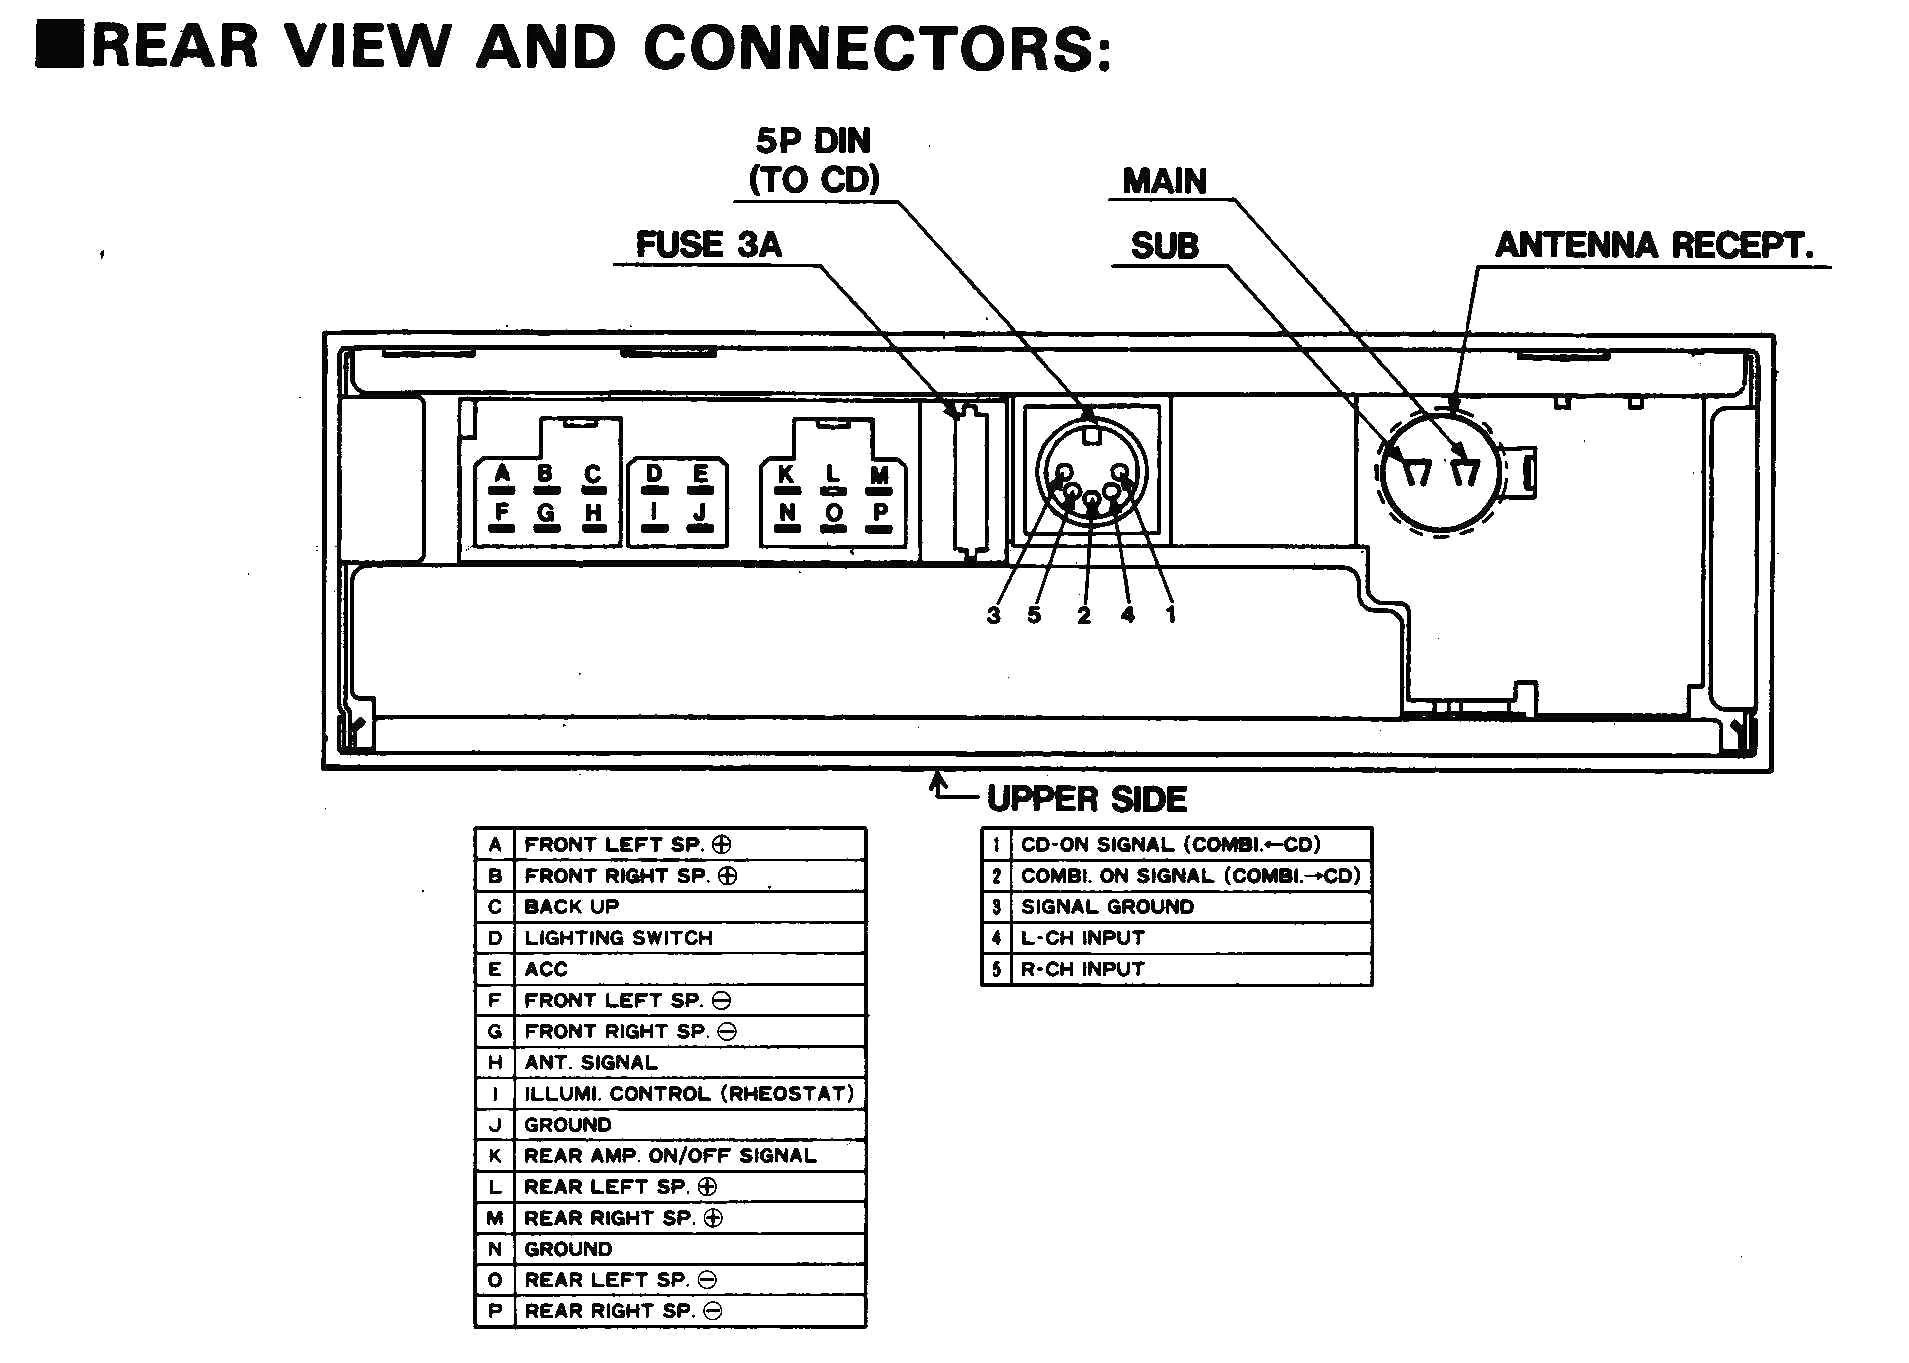 1990 Lincoln town Car Wiring Diagram Factory Car Stereo Wiring Diagrams In Jpg Striking Speaker Diagram Of 1990 Lincoln town Car Wiring Diagram